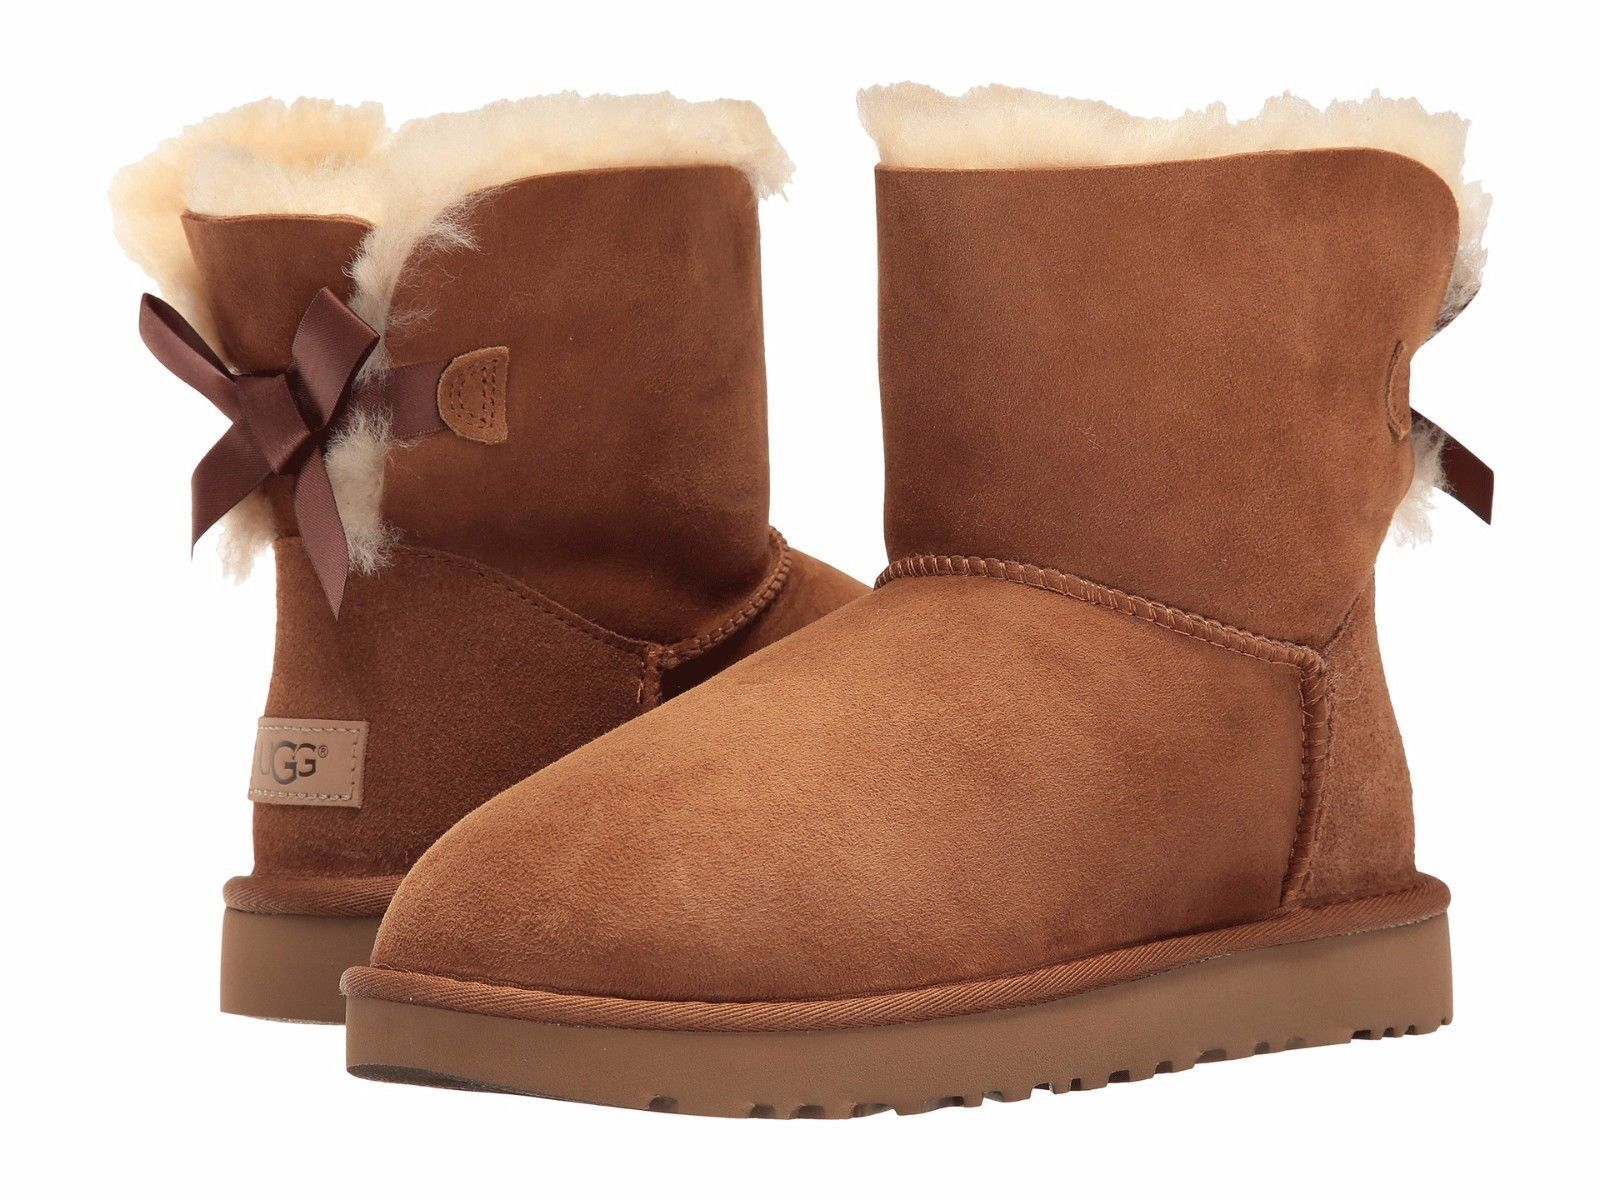 95d2d8ee985 Women's UGG Shoes Mini Bailey Bow II Boots 1016501 Chestnut 5 6 7 8 9 10  11*NEW*